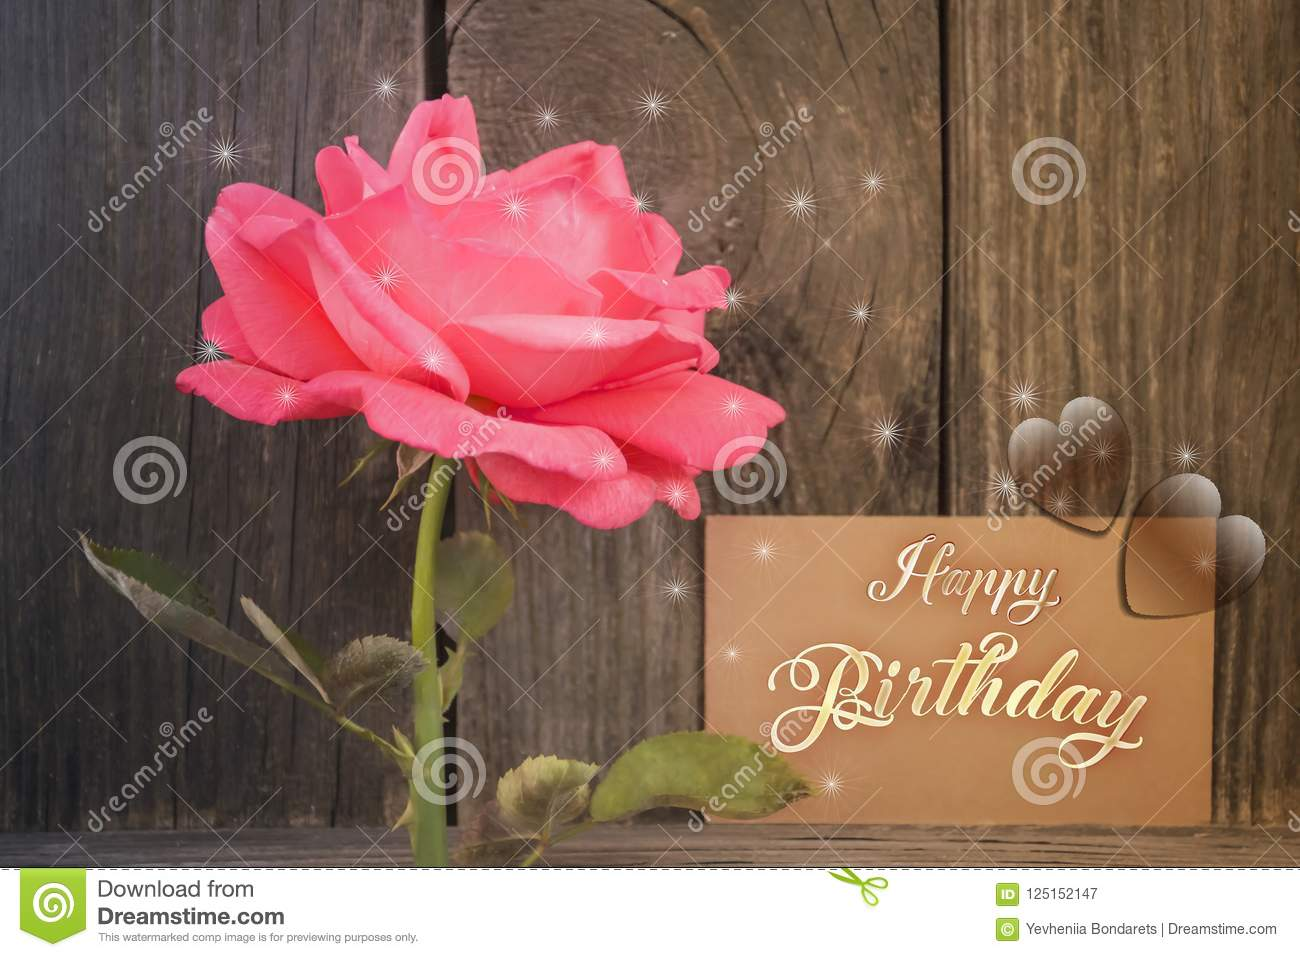 Spring Birthday Rose Flower Picturesque Flowe Picturesboss